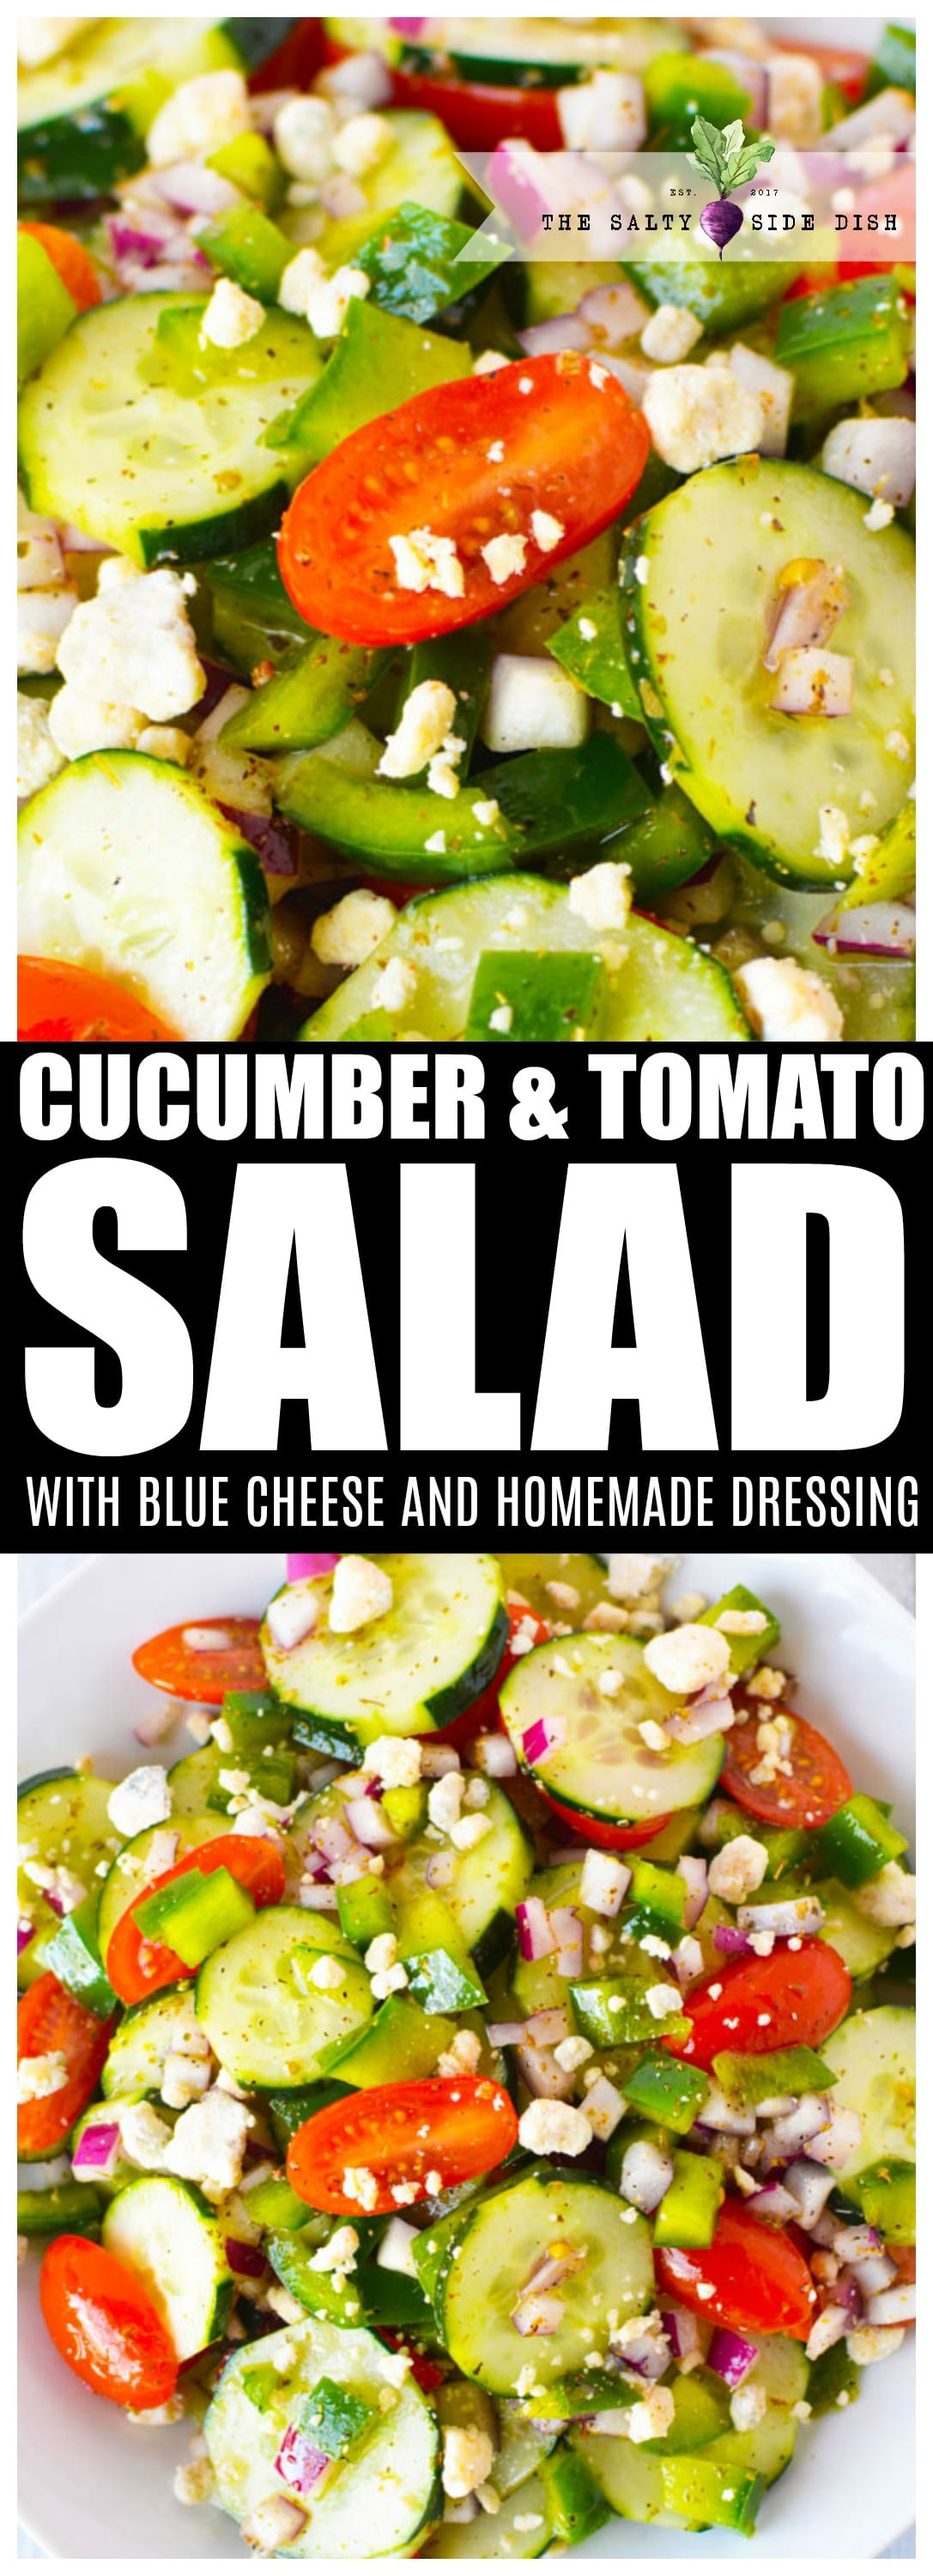 Cucumber Tomato salad is a light, fresh and healthy salad packed with grape tomatoes, red onions and delicious feta cheese. Dripping in a delicious olive oil, lemon, and red wine vinegar base, this is a healthy salad recipe that takes under 10 minutes to make #salads #salad #cucumber #tomatoes #food #sidedish #saltysidedish #recipe #vegan #vegetarian